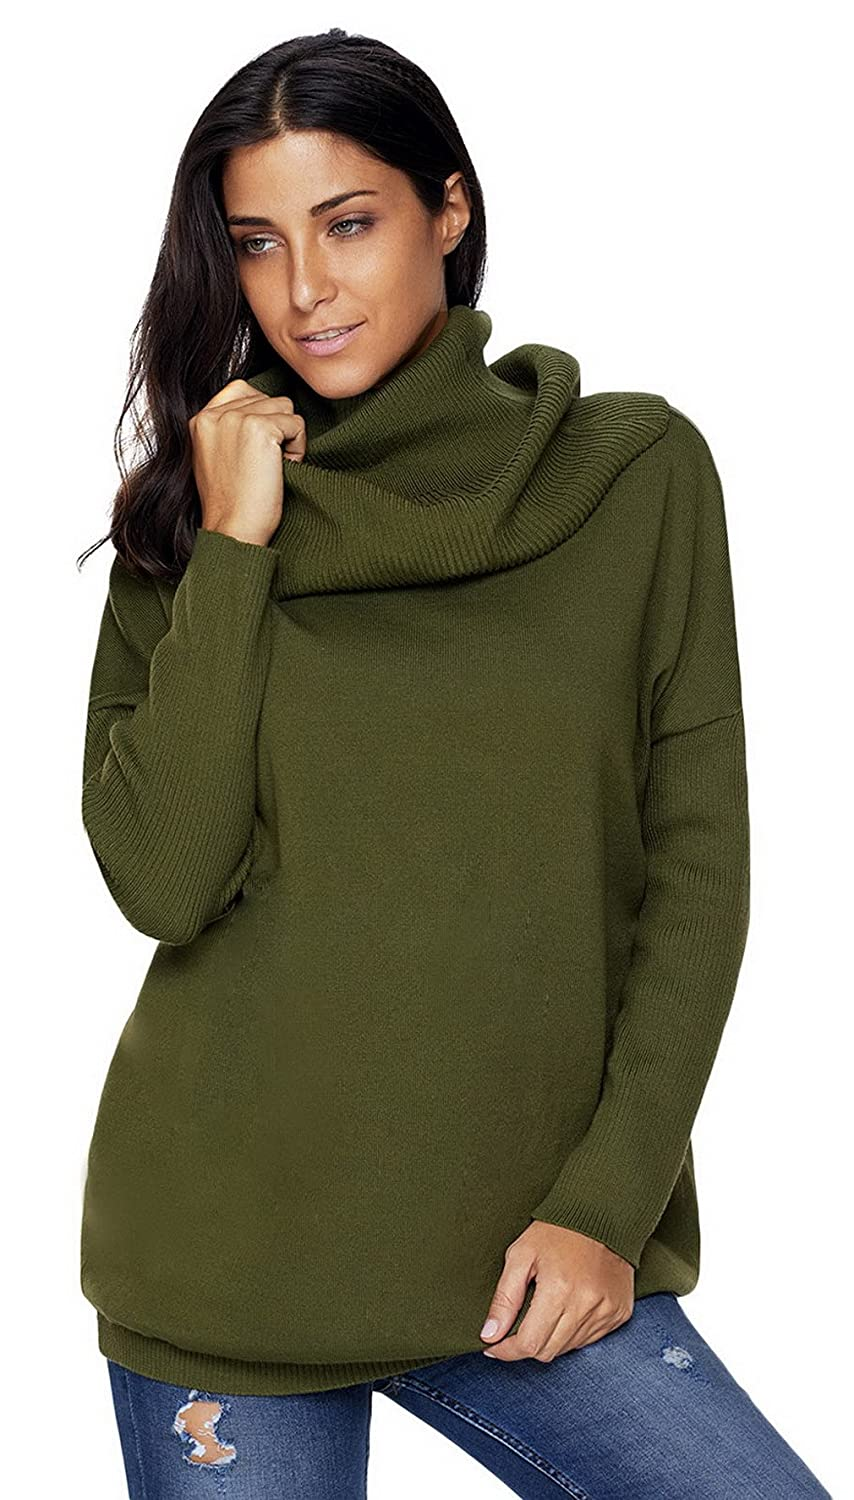 Brcus Women Knit Cowl Neck Pullover Jumper Turtleneck Winter Warm Long Sweater Tops